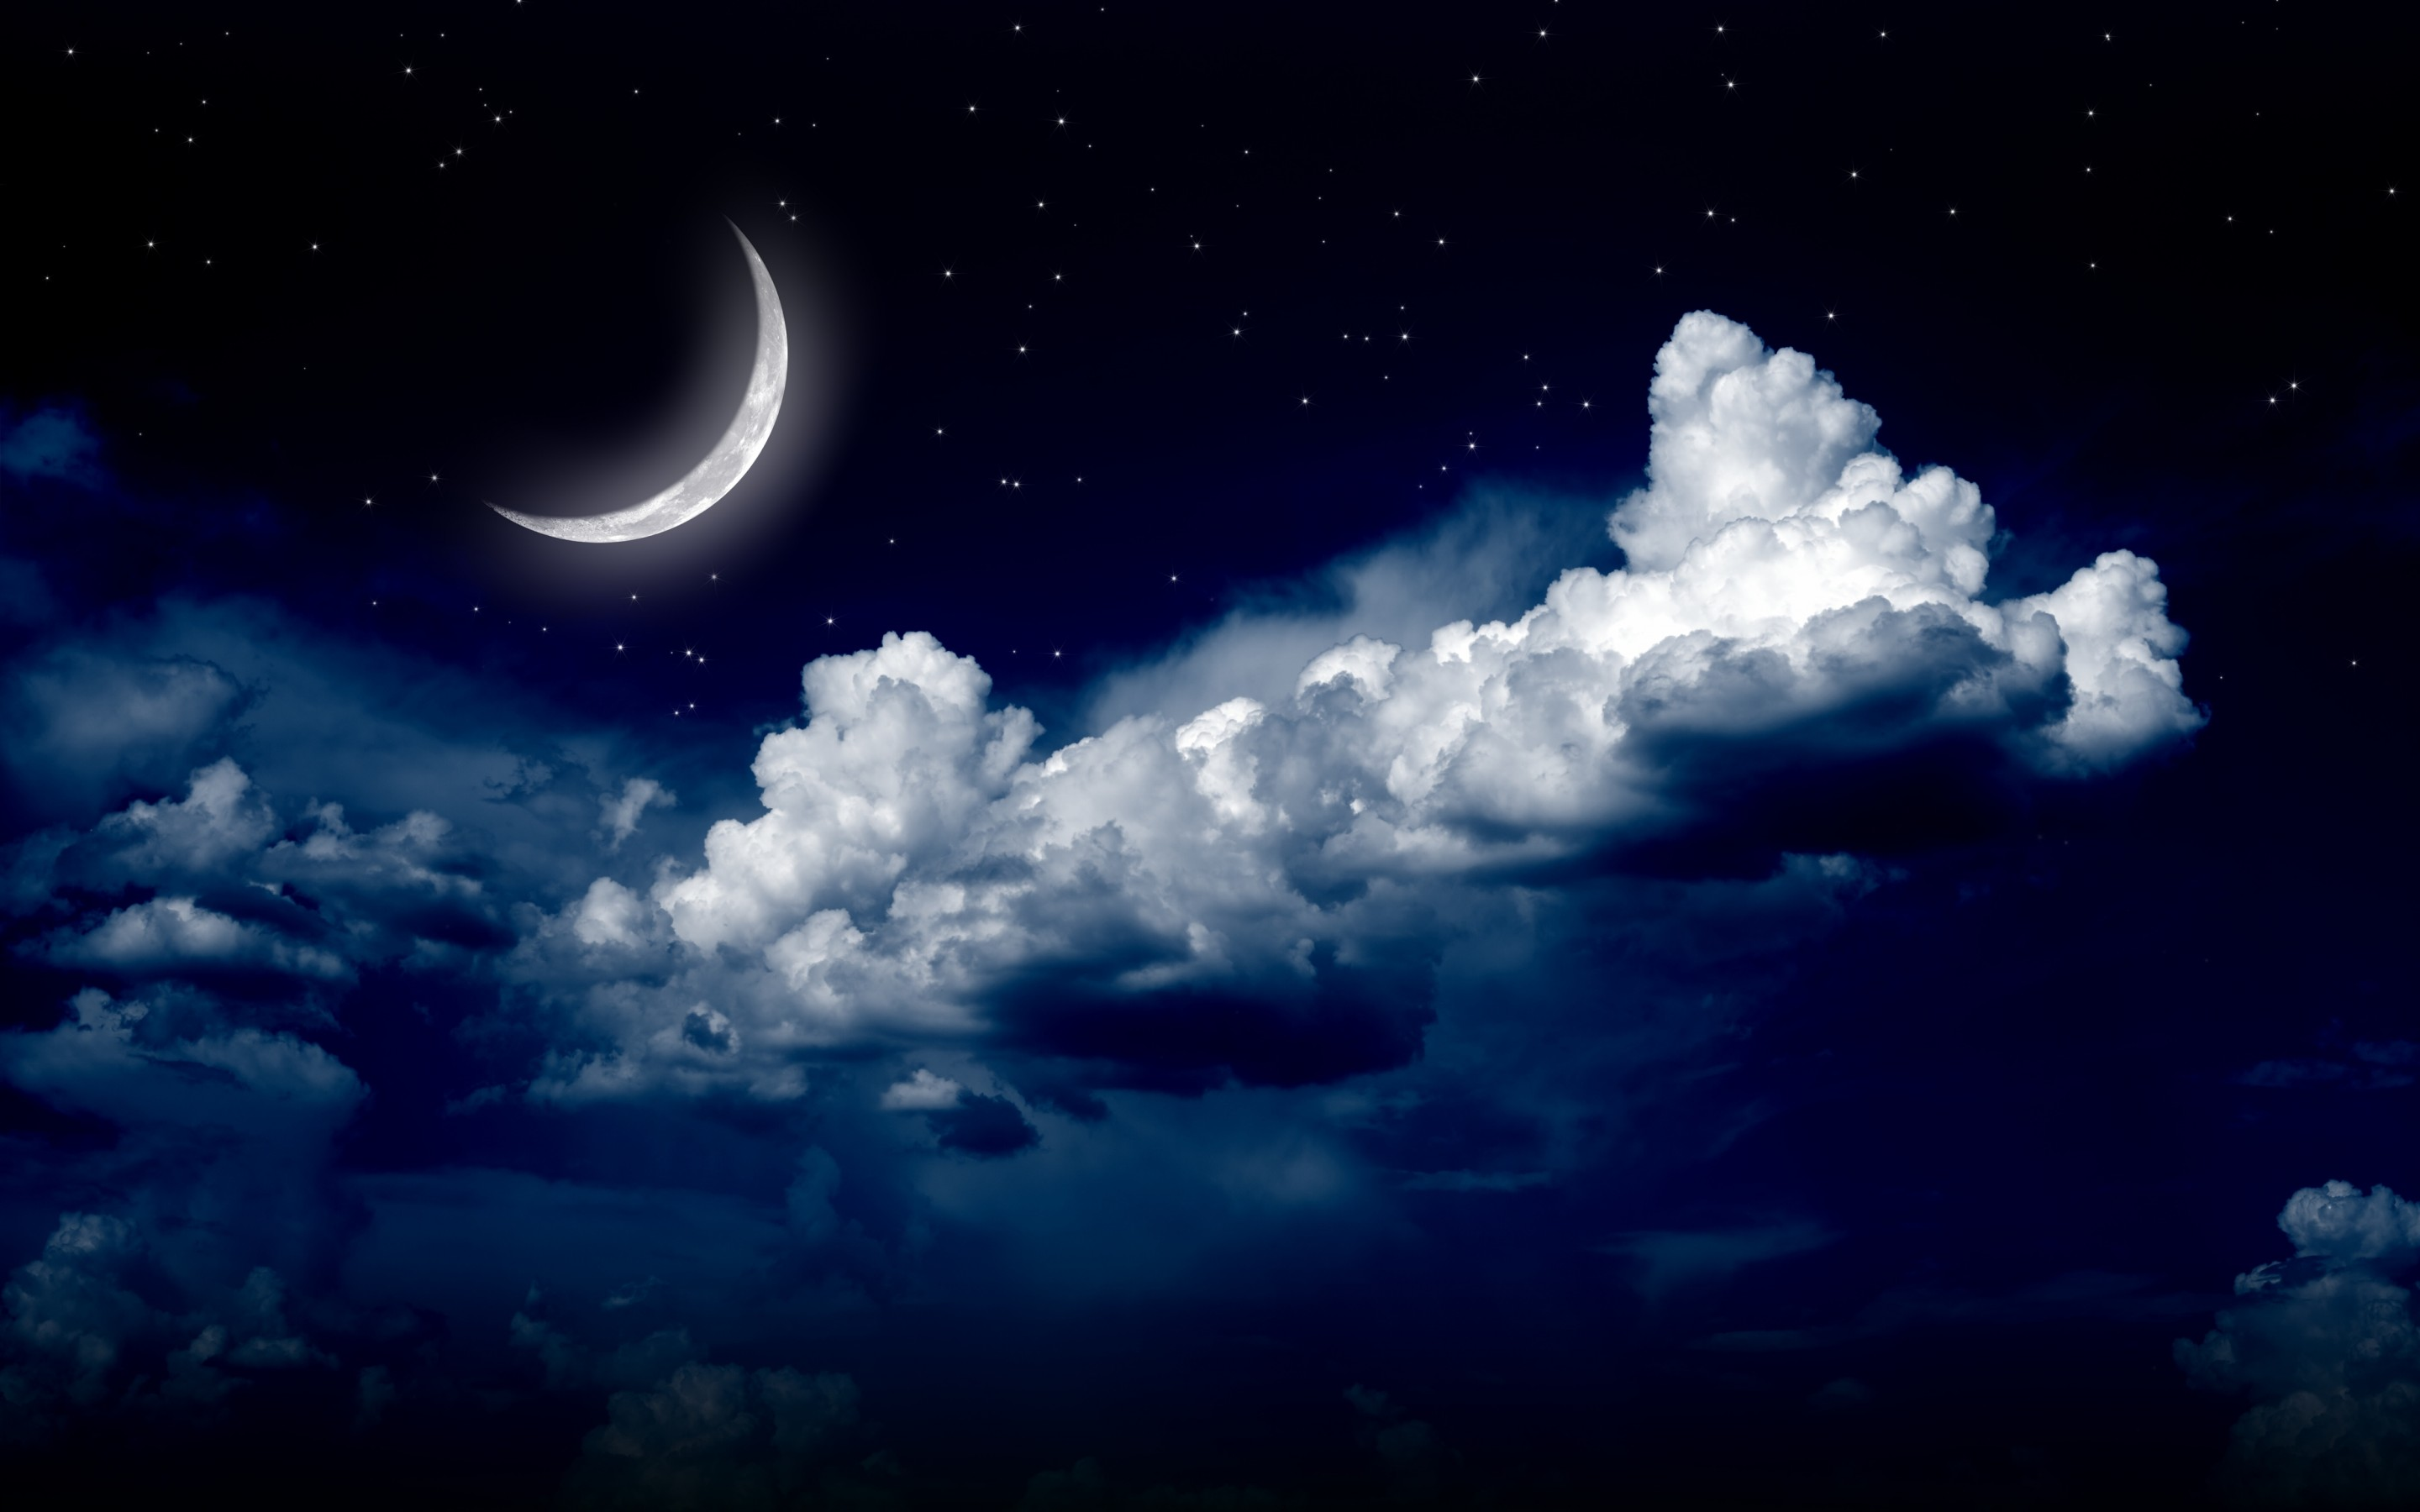 moonlight moon night nature landscape clouds stars sky g wallpaper background